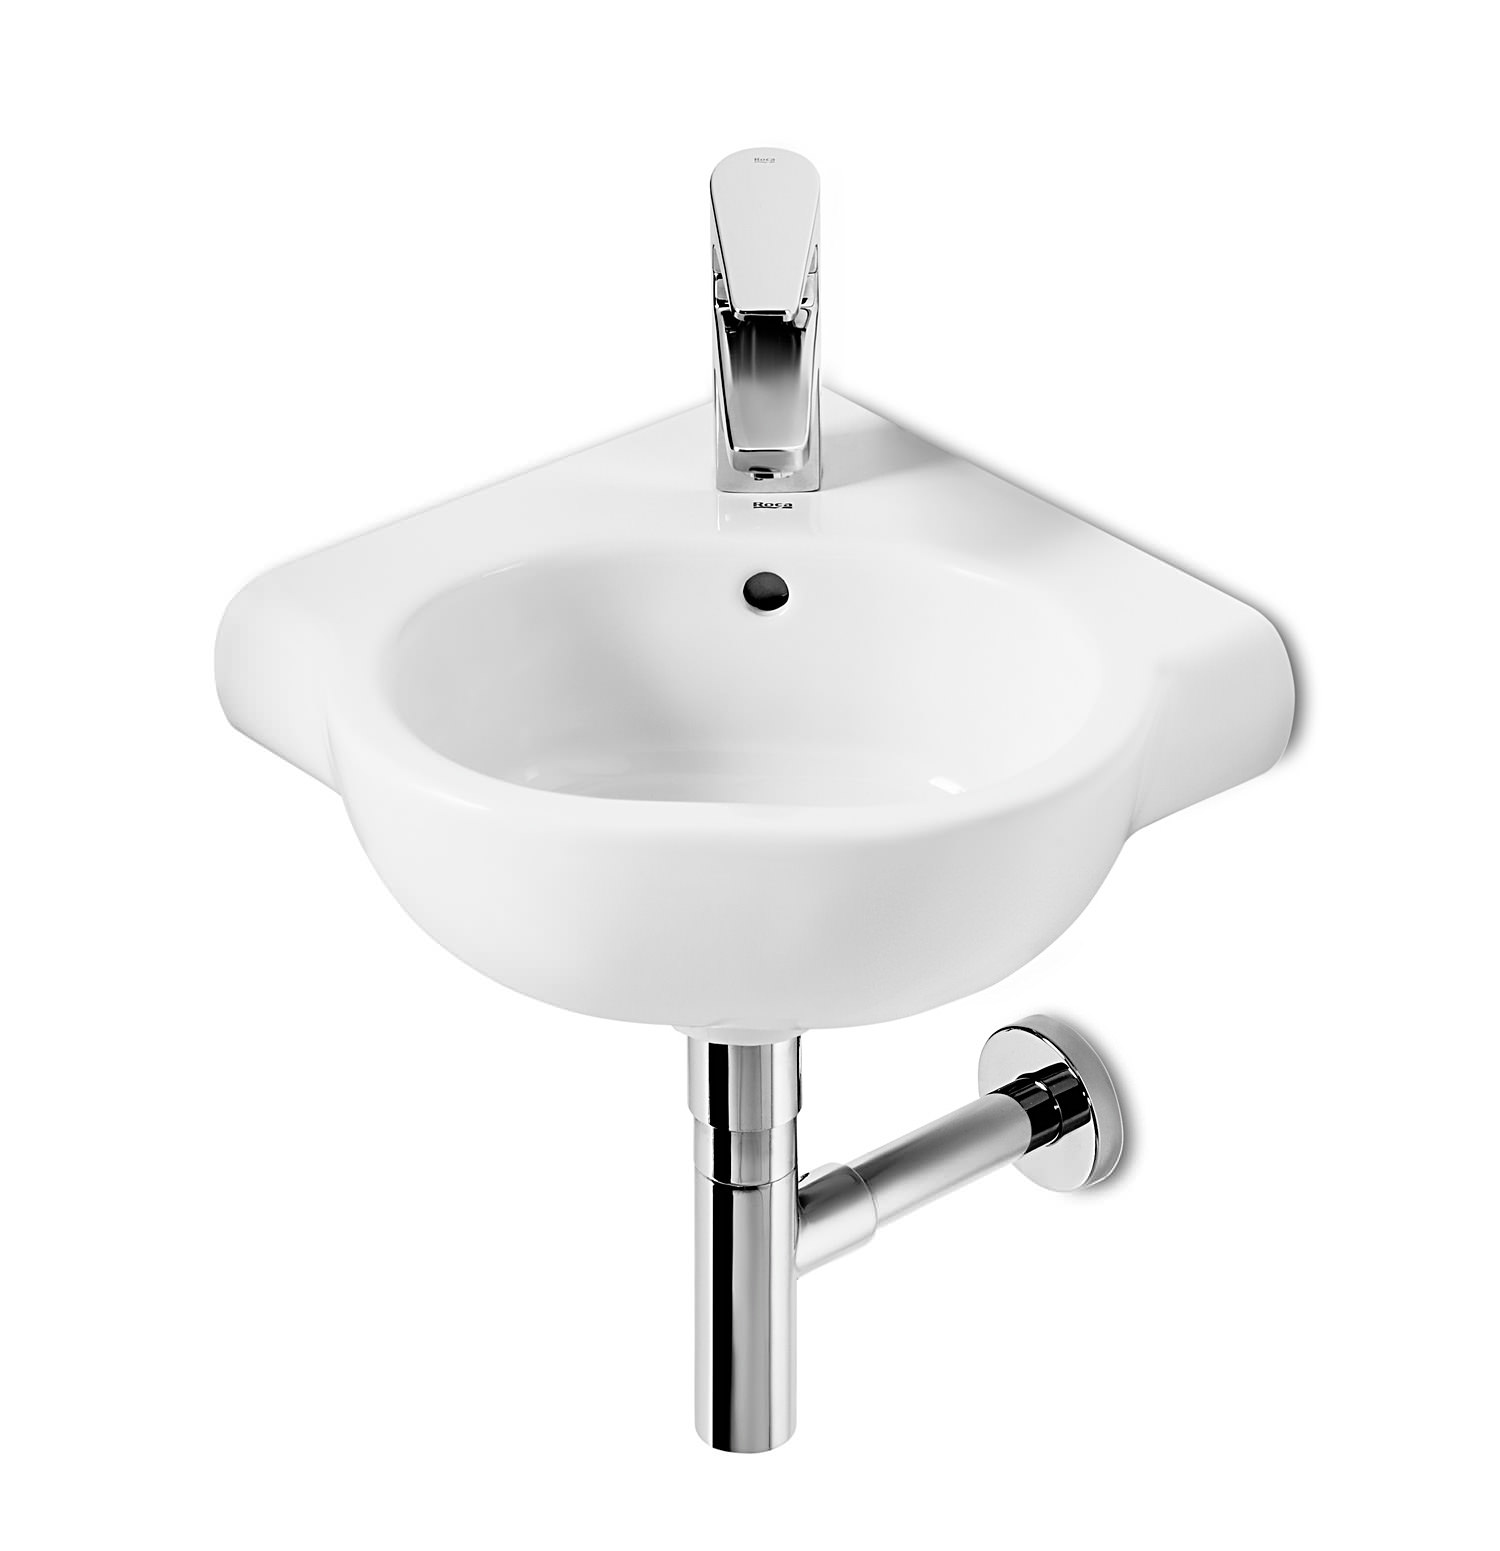 roca bathroom sinks roca meridian n compact corner basin 350mm wide 32724c000 14235 | QS V55535 1 lg